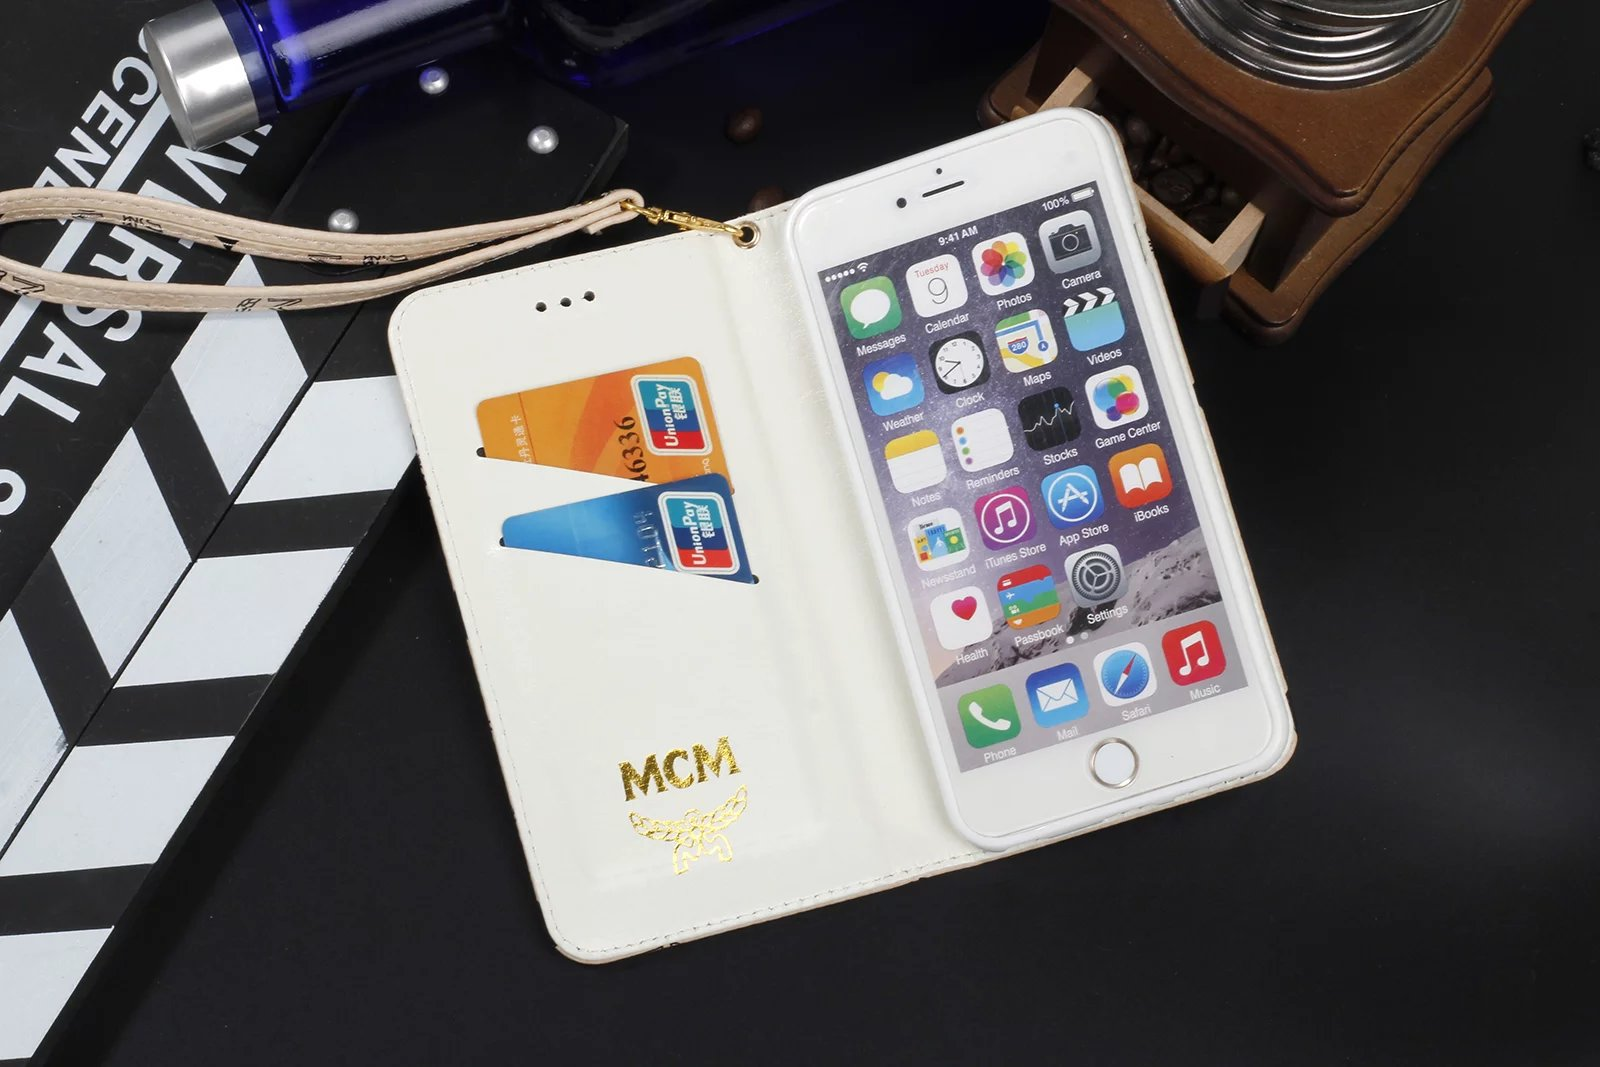 6s Plus s iphone cases ultimate iphone 6s Plus case fashion iphone6s plus case shop phone cases buy iphone covers create own cell phone case good phone covers how much do mophie cases cost cheap designer phone cases